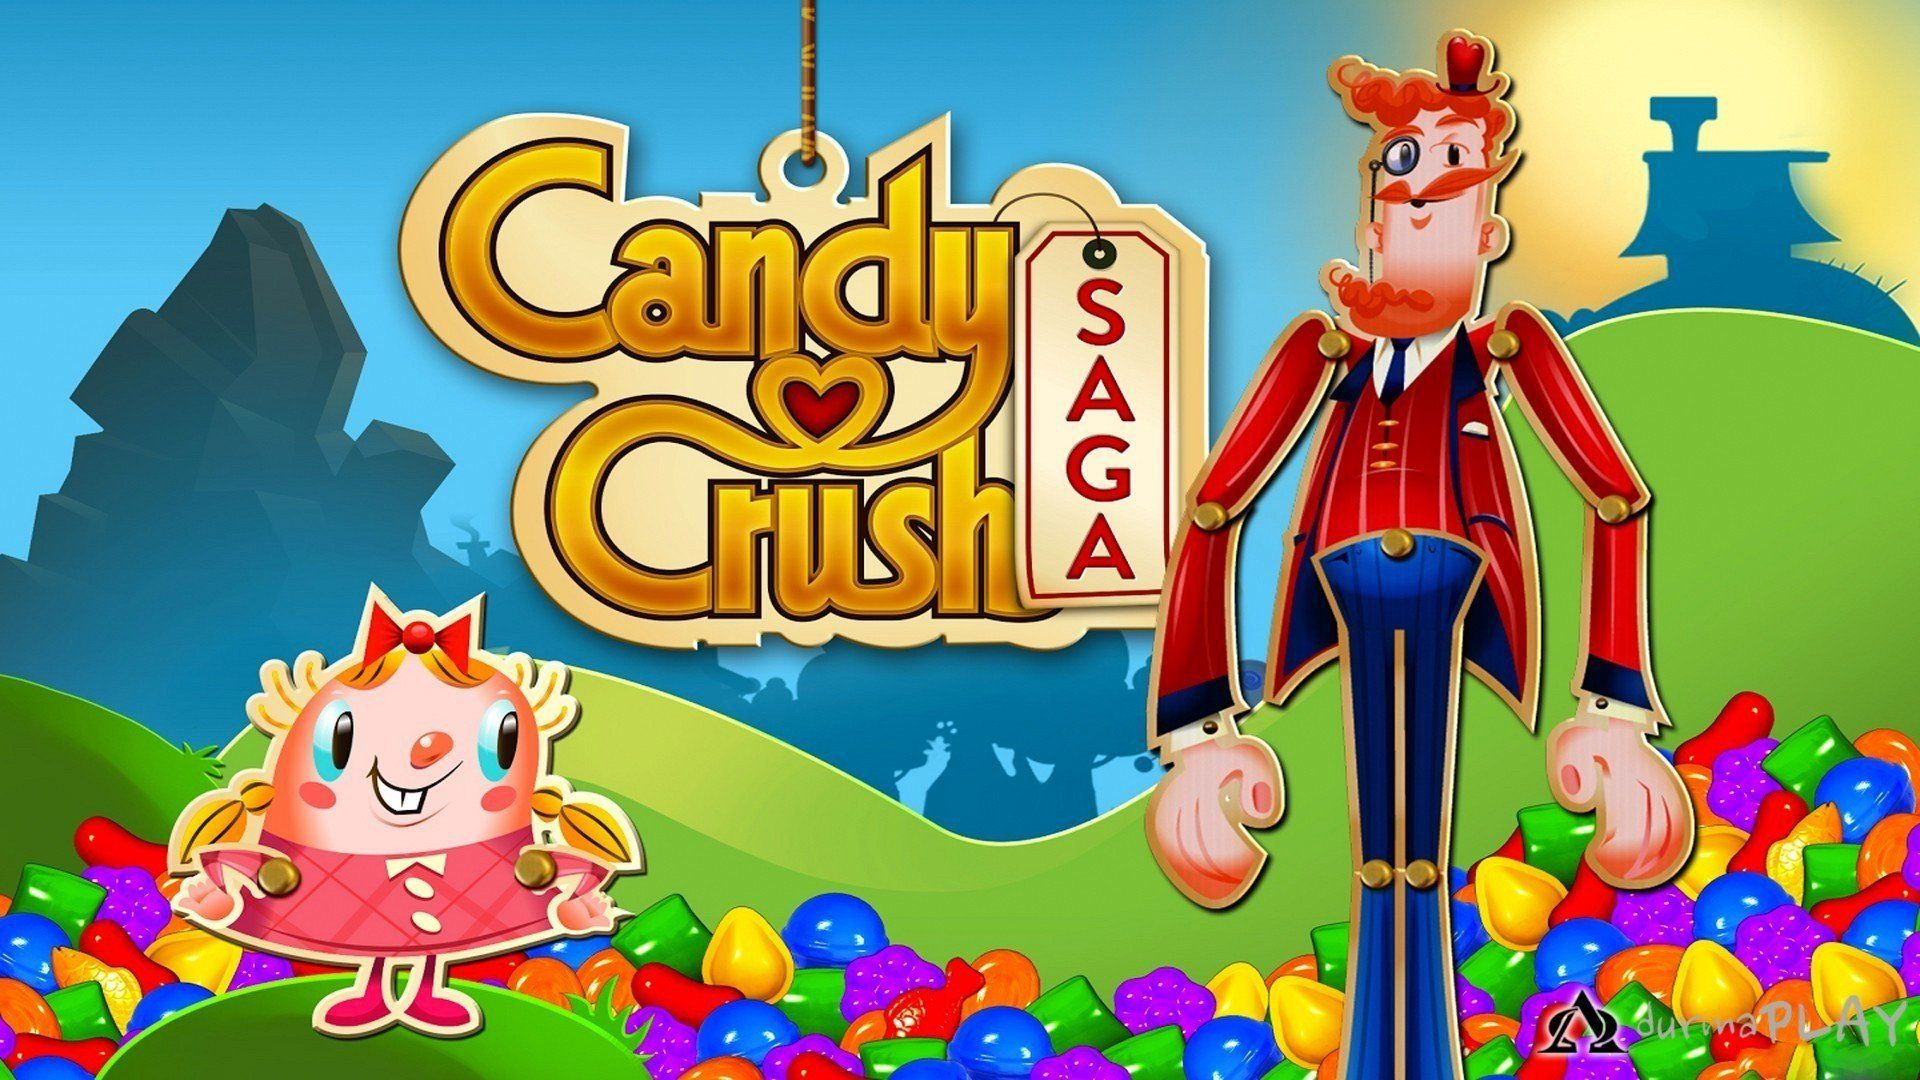 Top 5 Interesting Facts About Candy Crush Candy crush